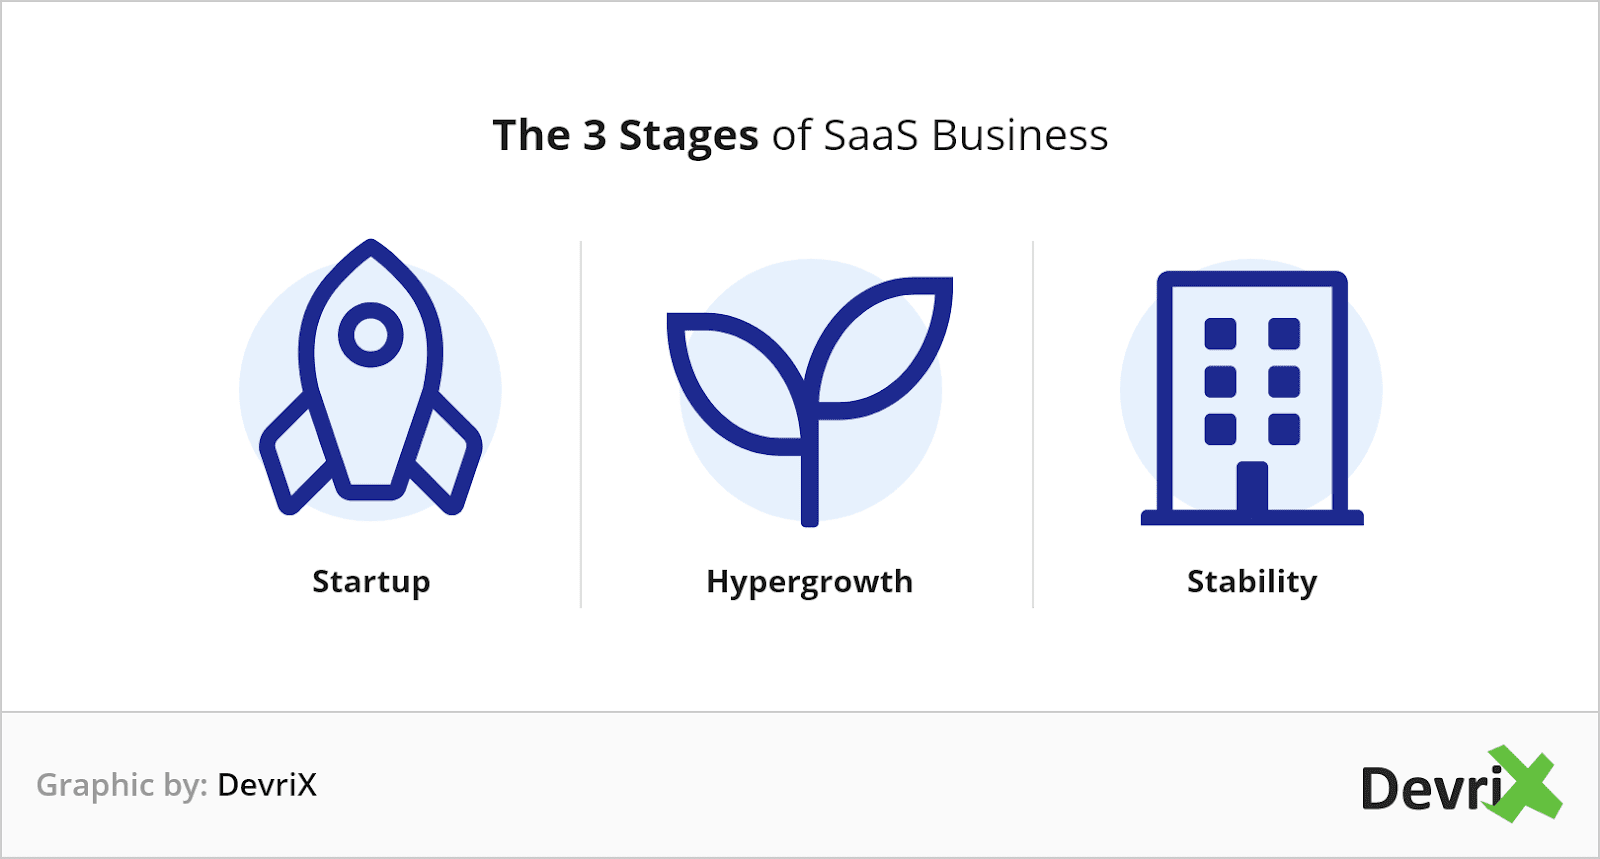 3 stages of saas business@2x